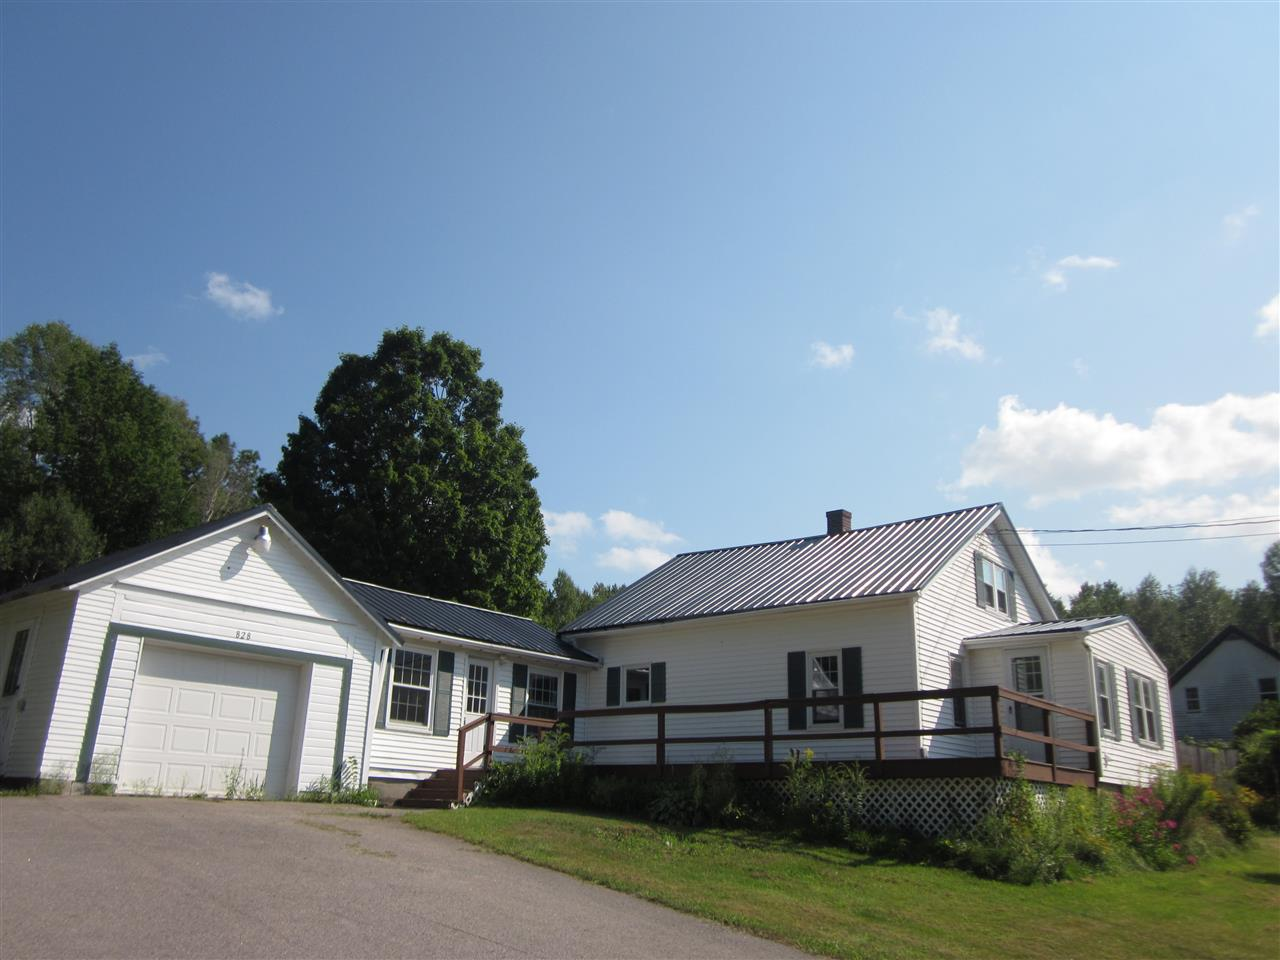 828 Franklin Hwy, Andover, NH 03216